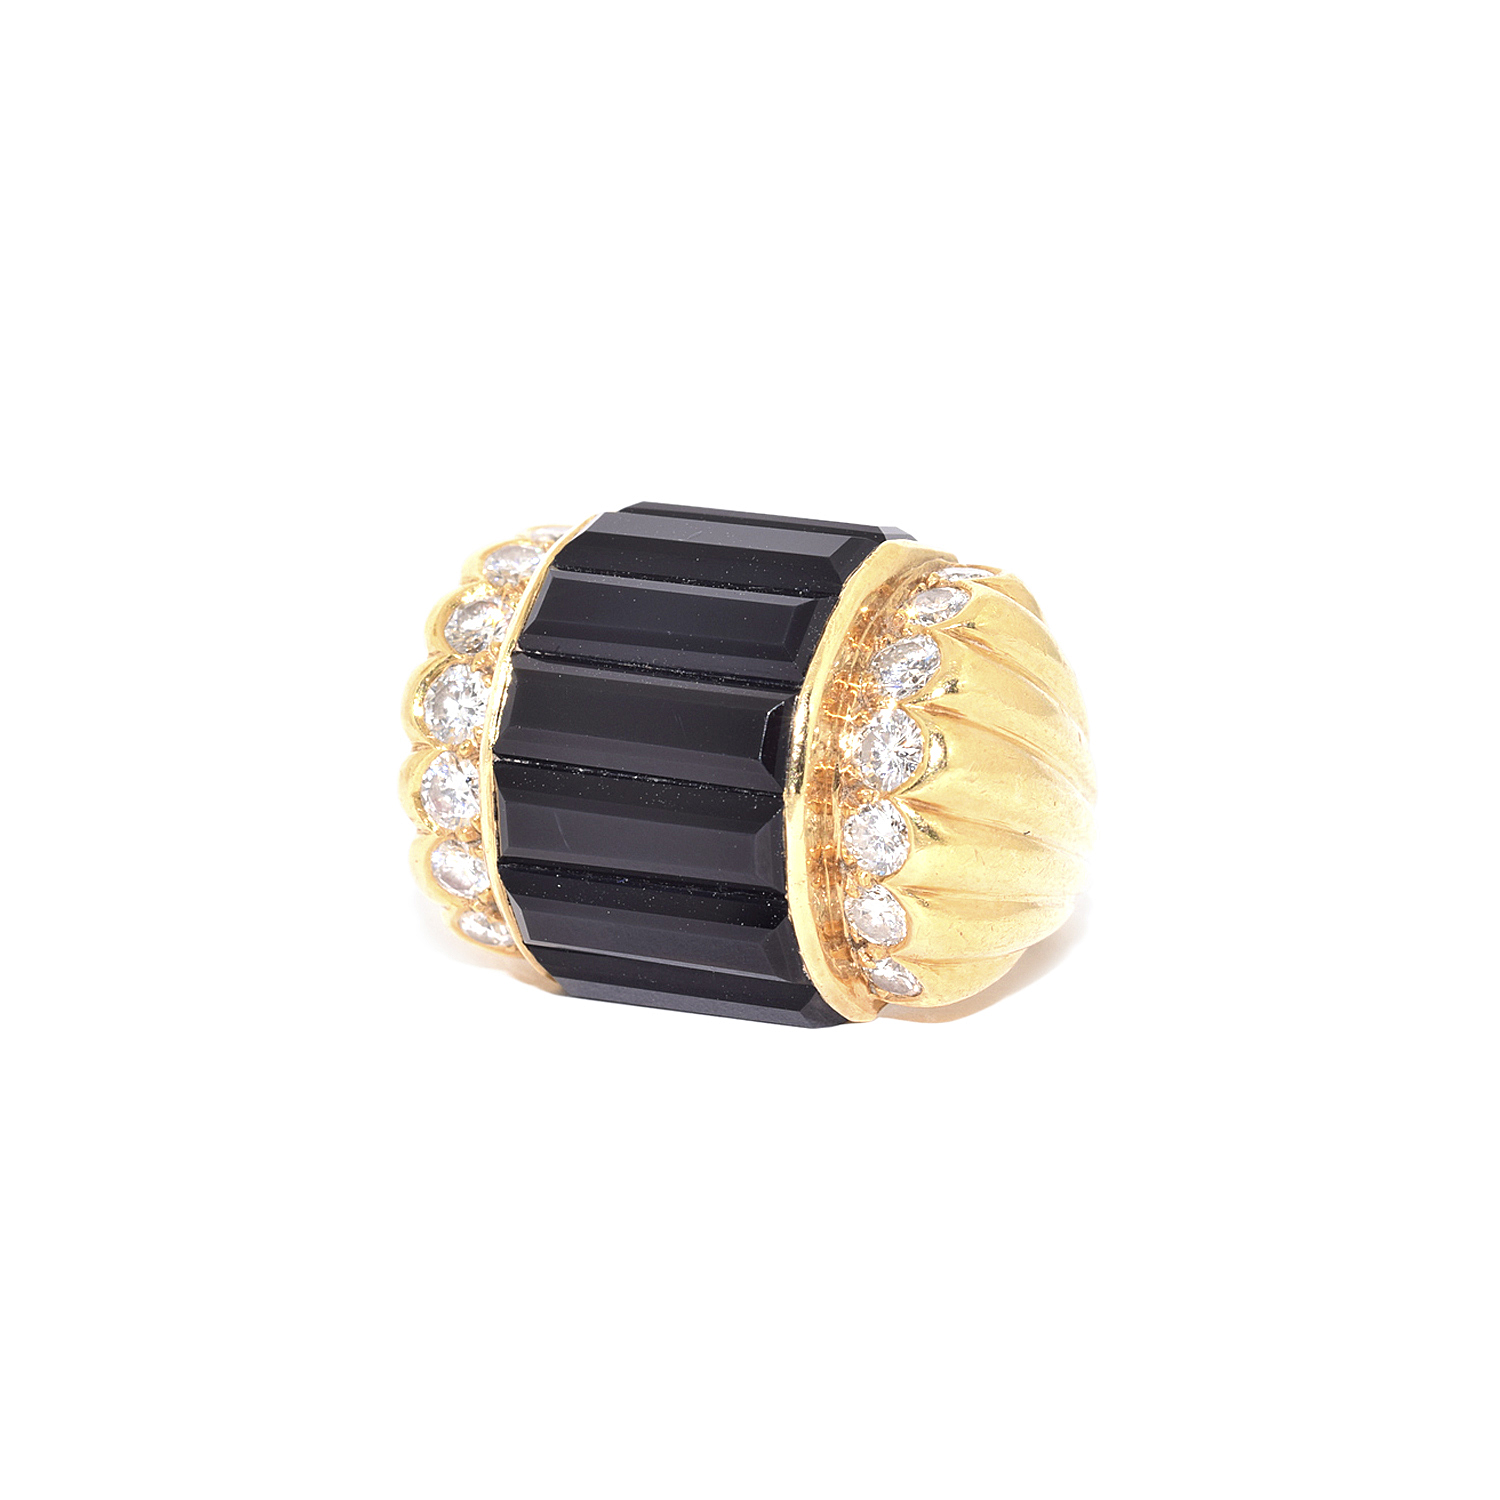 18K Yellow Gold Onyx Baguette and Diamond Ring by Cartier Style R-38996-FL-0-0